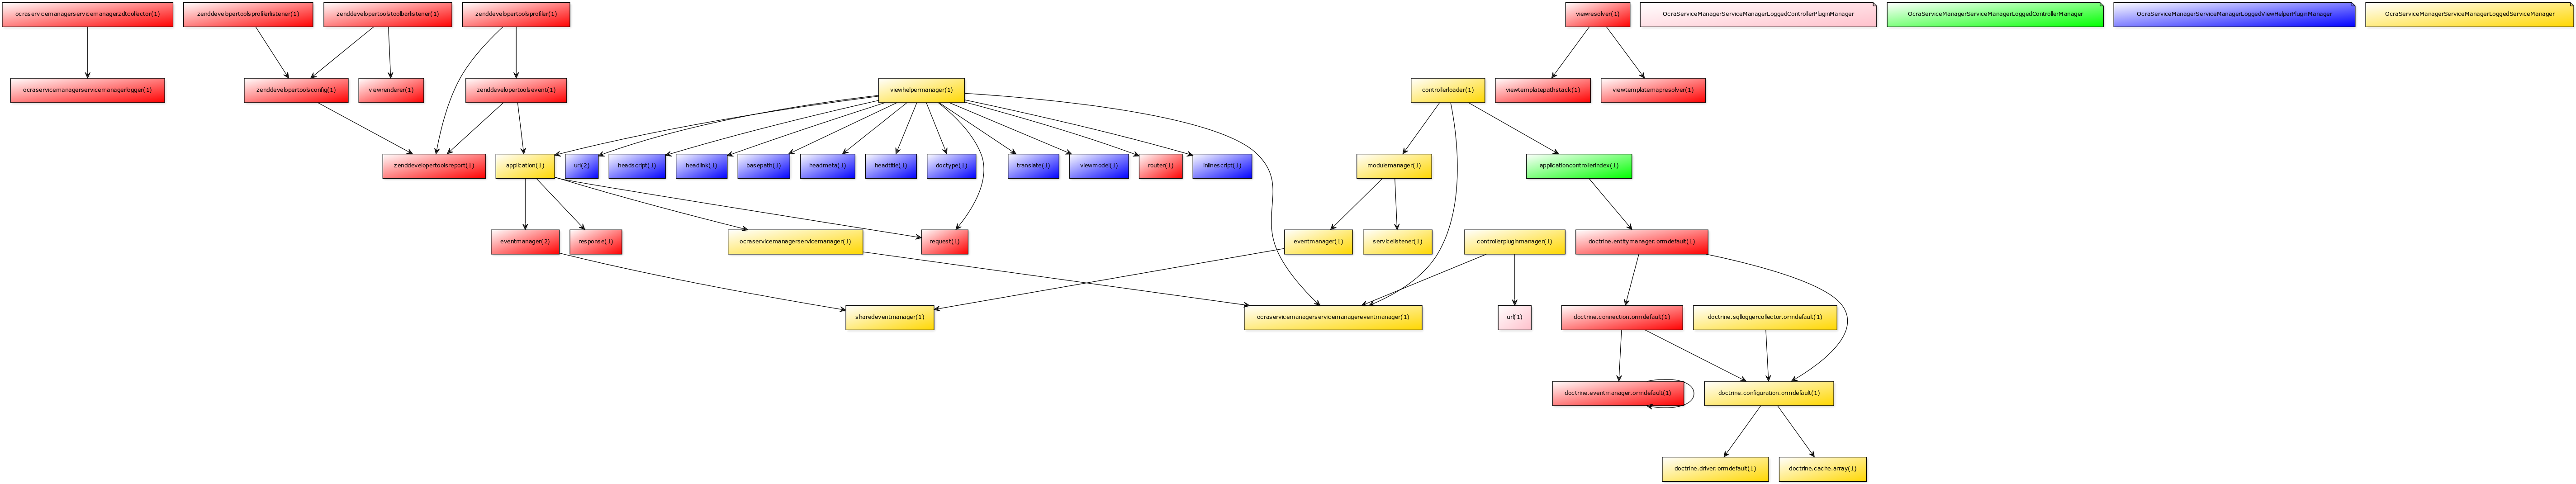 Example Dependency Graph generated by OcraServiceManager